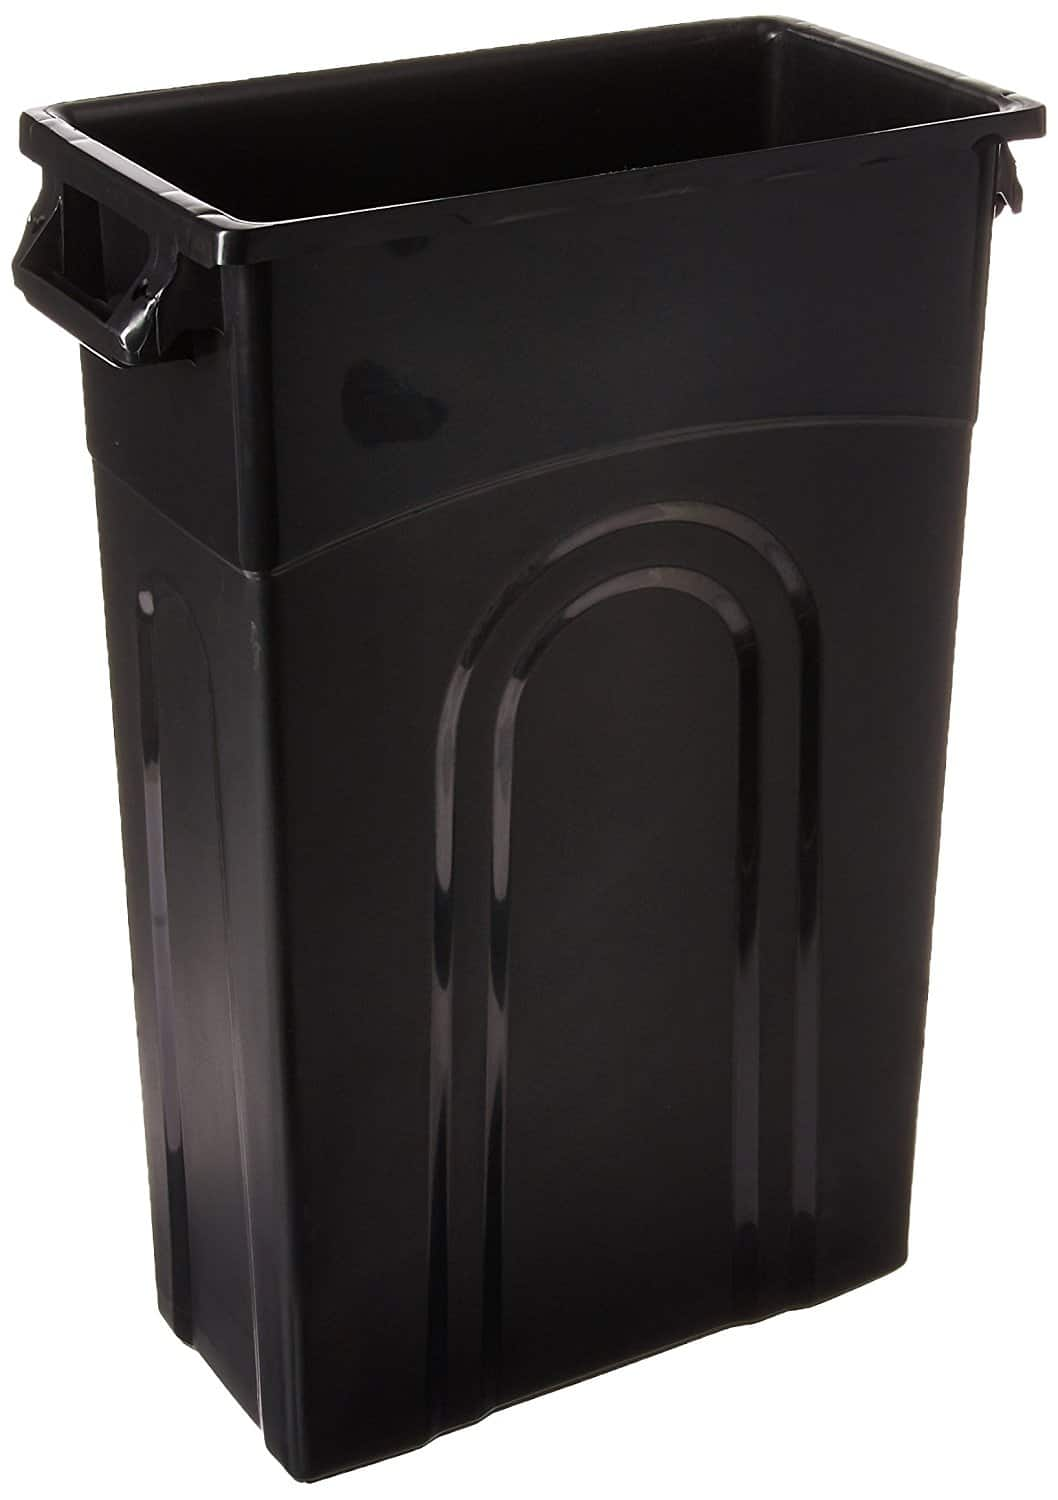 United Solutions TI0032 Highboy Waste Container In Black, 33 Gallon, Slim Fit Wastebasket $12.84 free ship w/ prime